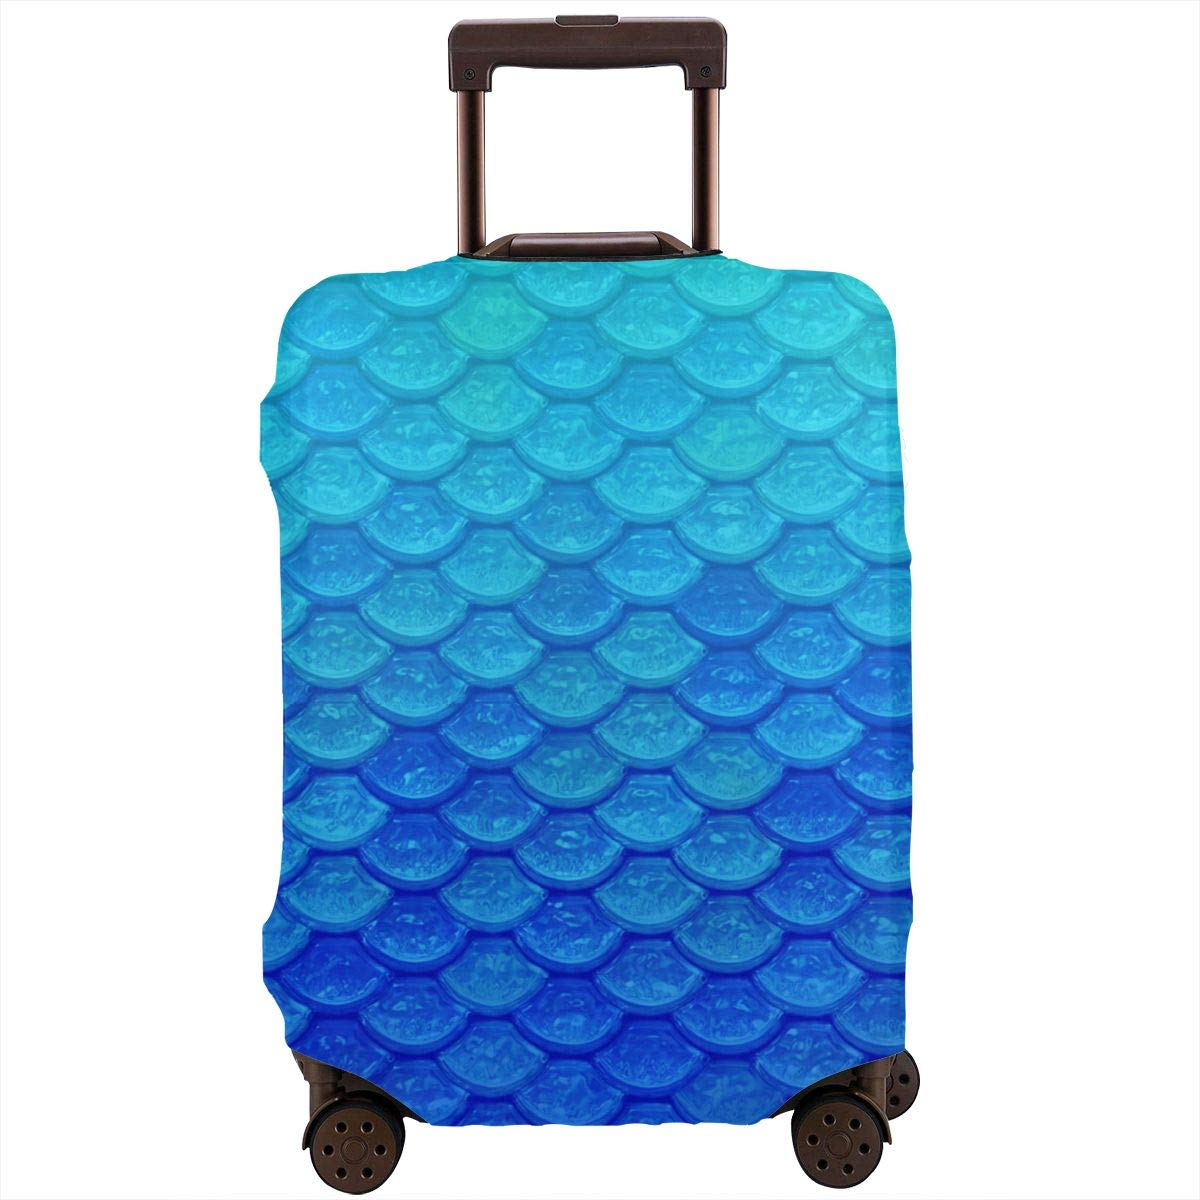 Tlkkkd_N Blue Mermaid Scales Travel Luggage Cover Anti-Scratch Baggage Suitcase Protector Cover Fits 18-32 Inch